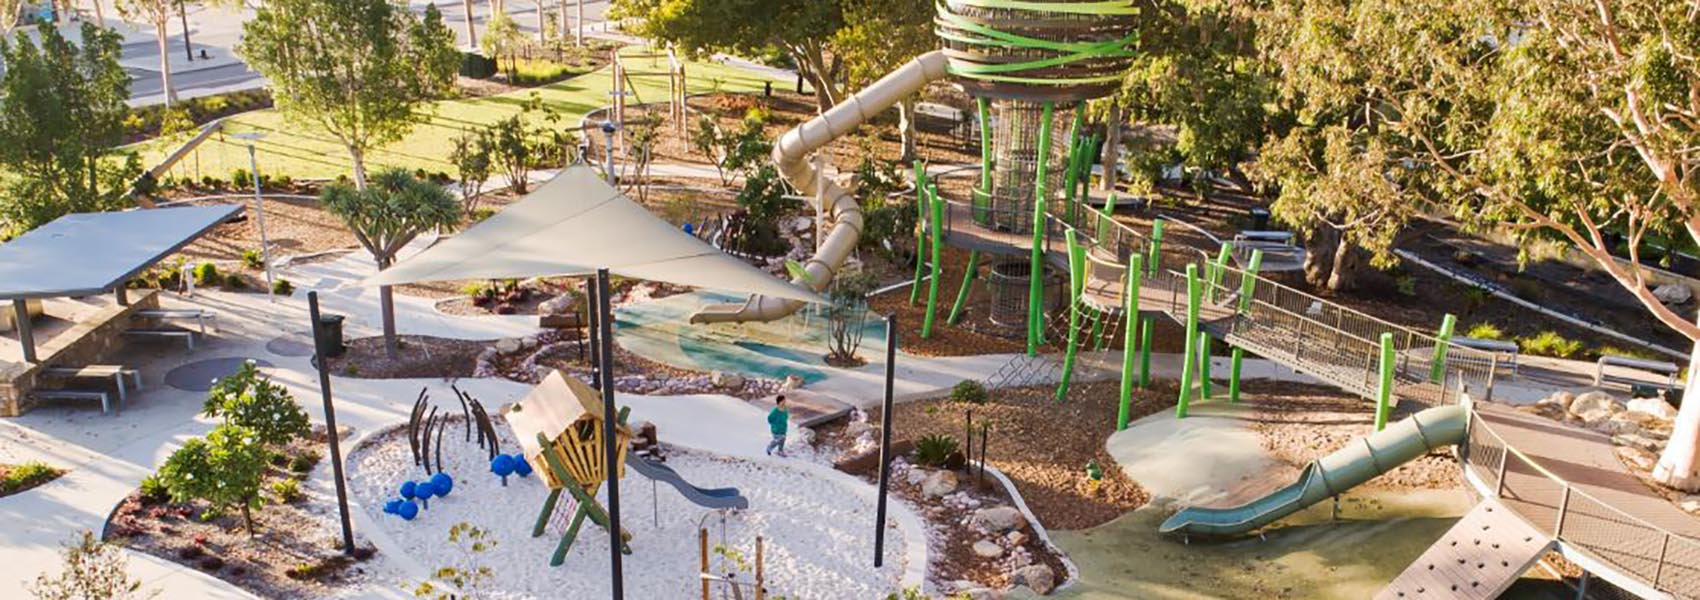 Jungle Park in Whiteman's Edge in Brabham features a high bird's nest for kids